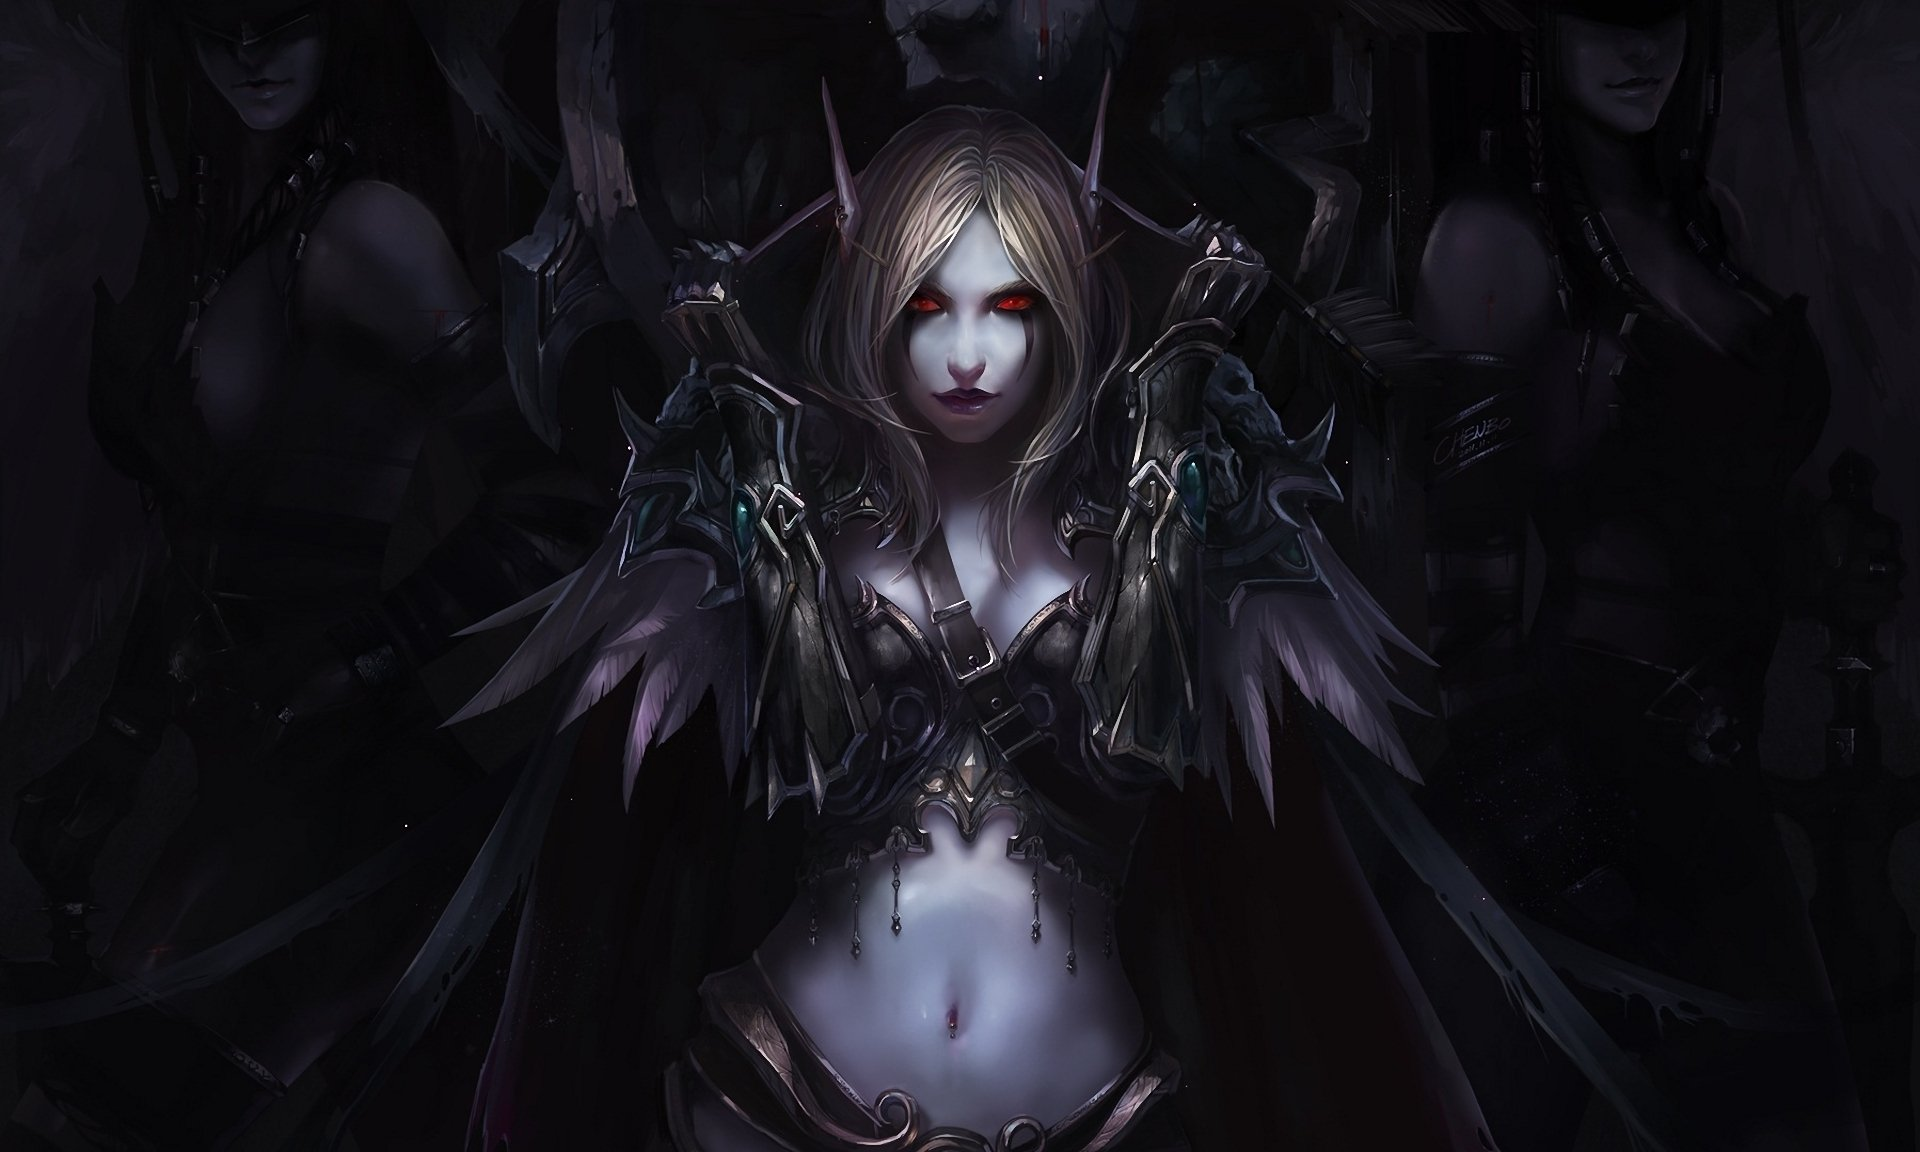 Video Game - World Of Warcraft  Elf Sylvanas Windrunner Fantasy Dark Dark Angel Demon Woman Warrior Woman Armor Wallpaper